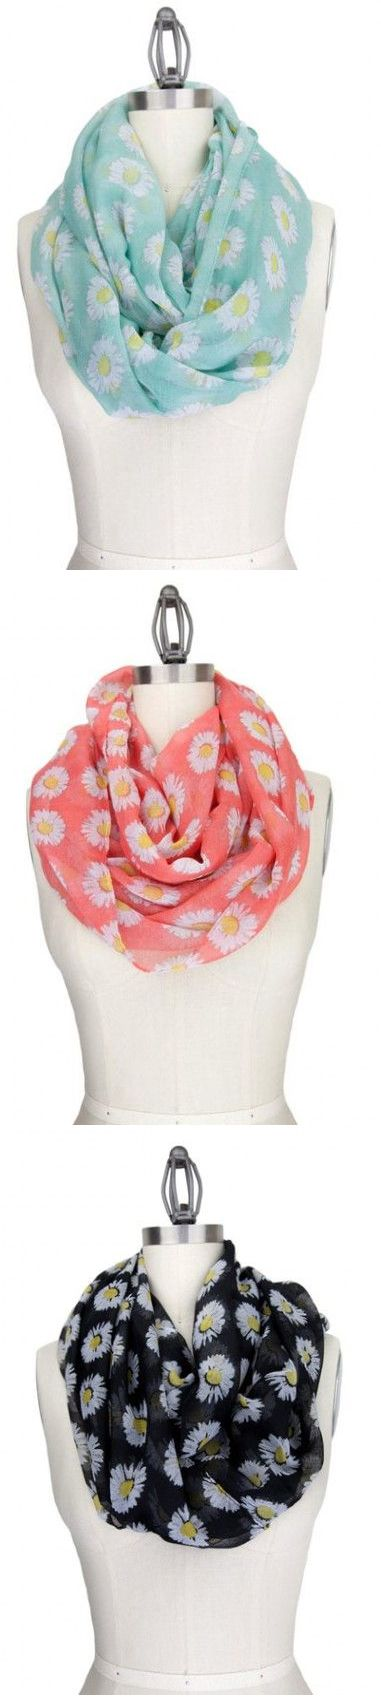 Pushing Daisies Sheer Infinity Scarves in Mint, Coral, and Black - http://www.pinterest.com/happysolez/pins/